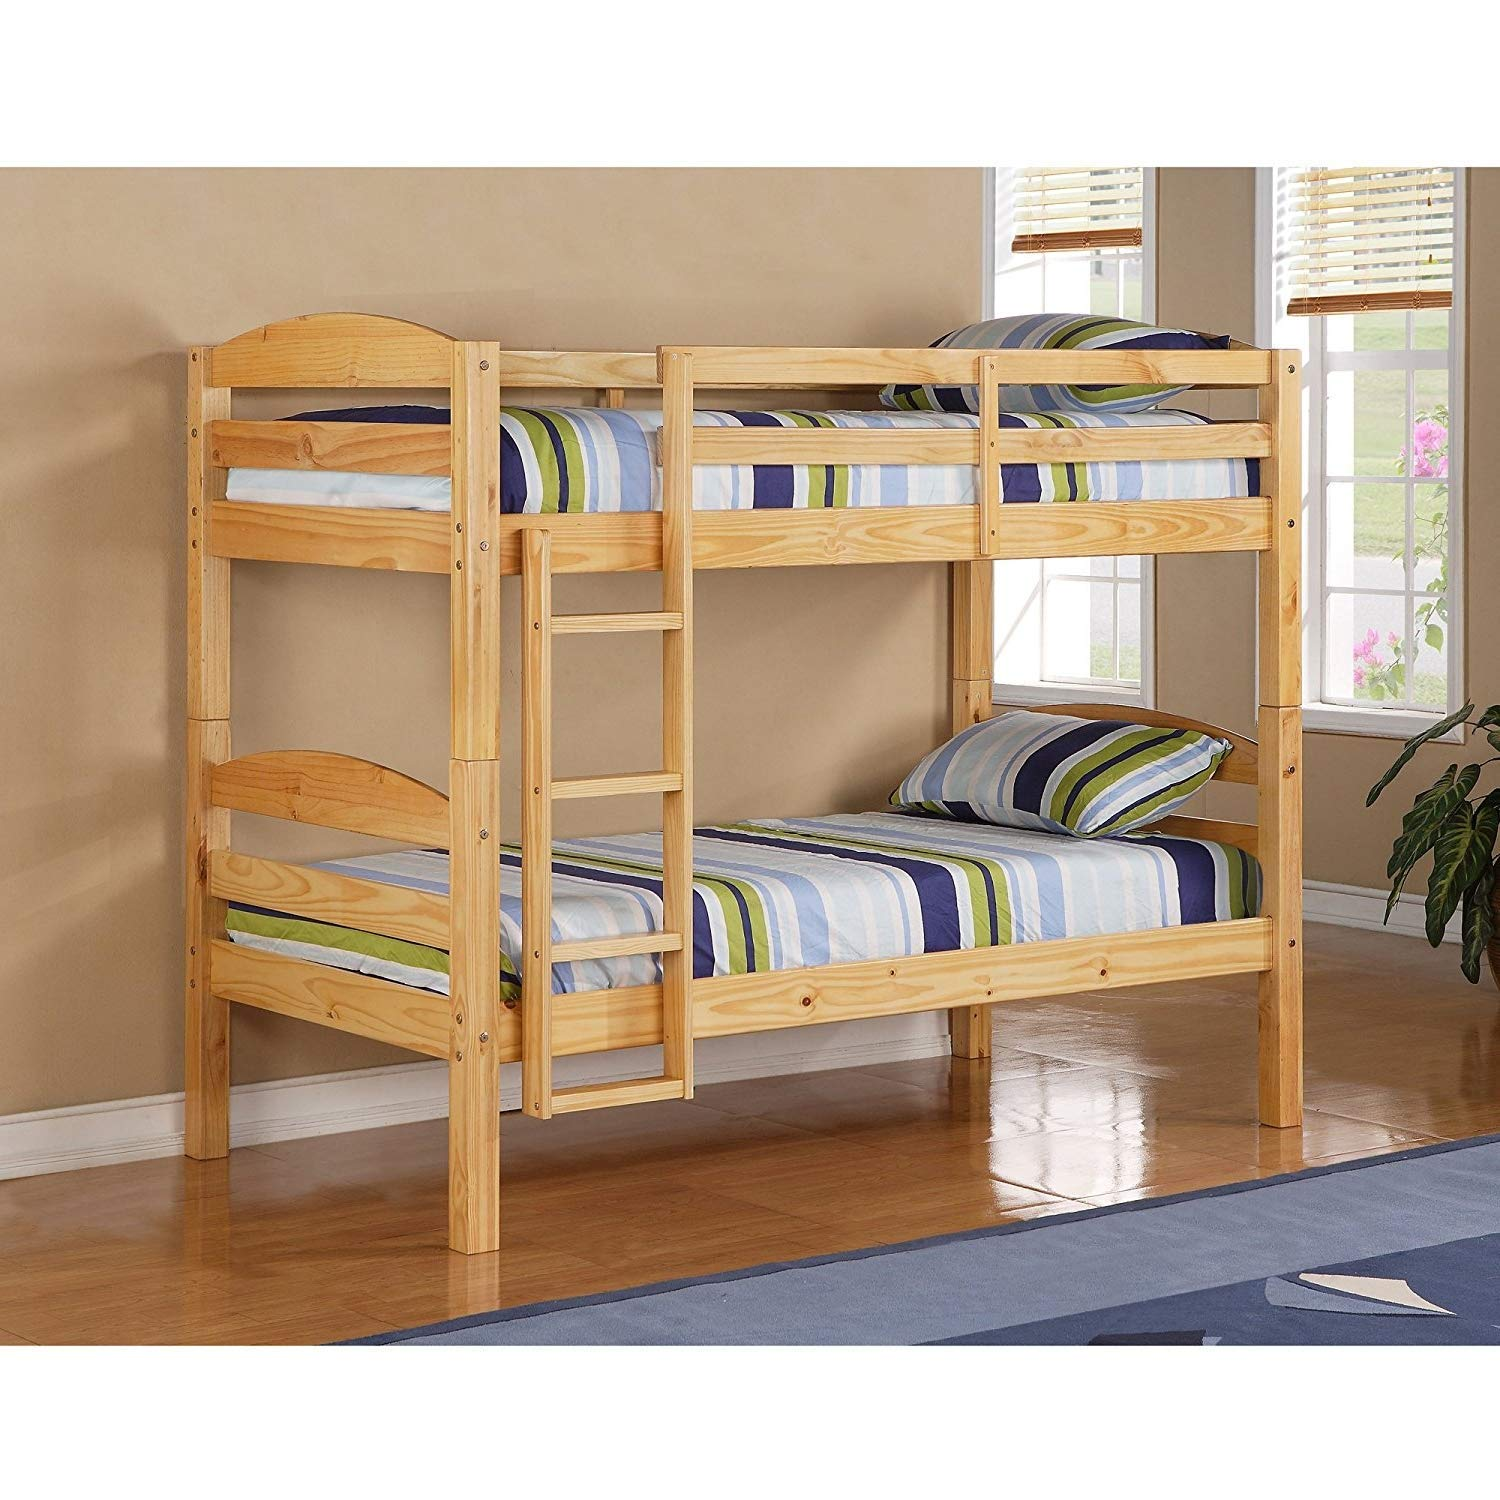 Bunk Beds for Kids Toddler Twin Over Twin Wood Natural Your Child Will Sleep in Style and Great Solution for Your Space Saving Needs by HomeTeks